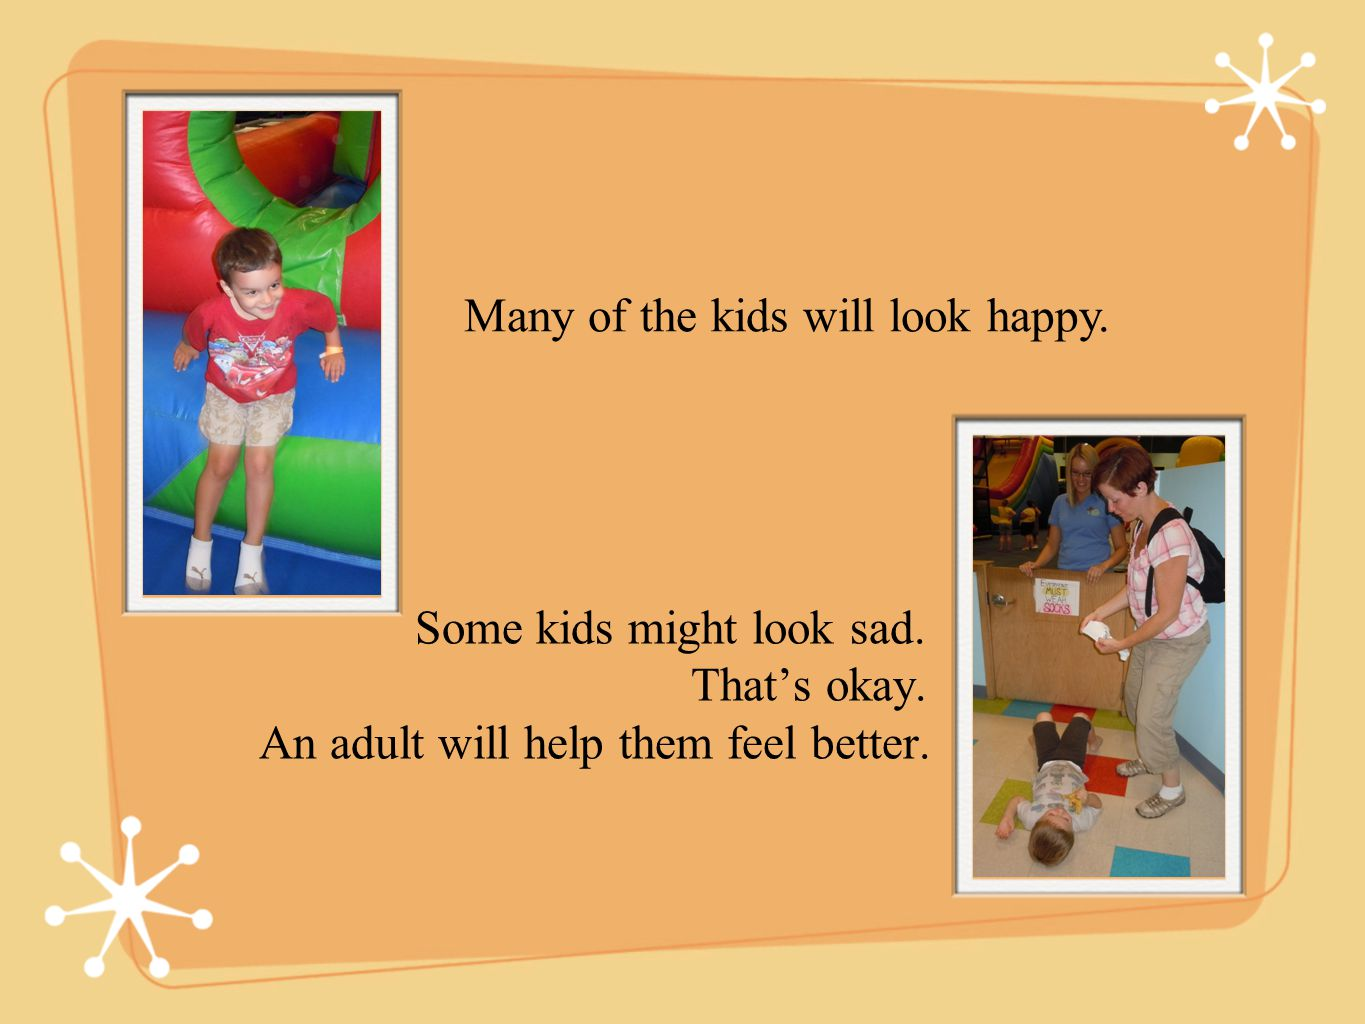 Some kids might look sad.Thats okay. An adult will help them feel better.